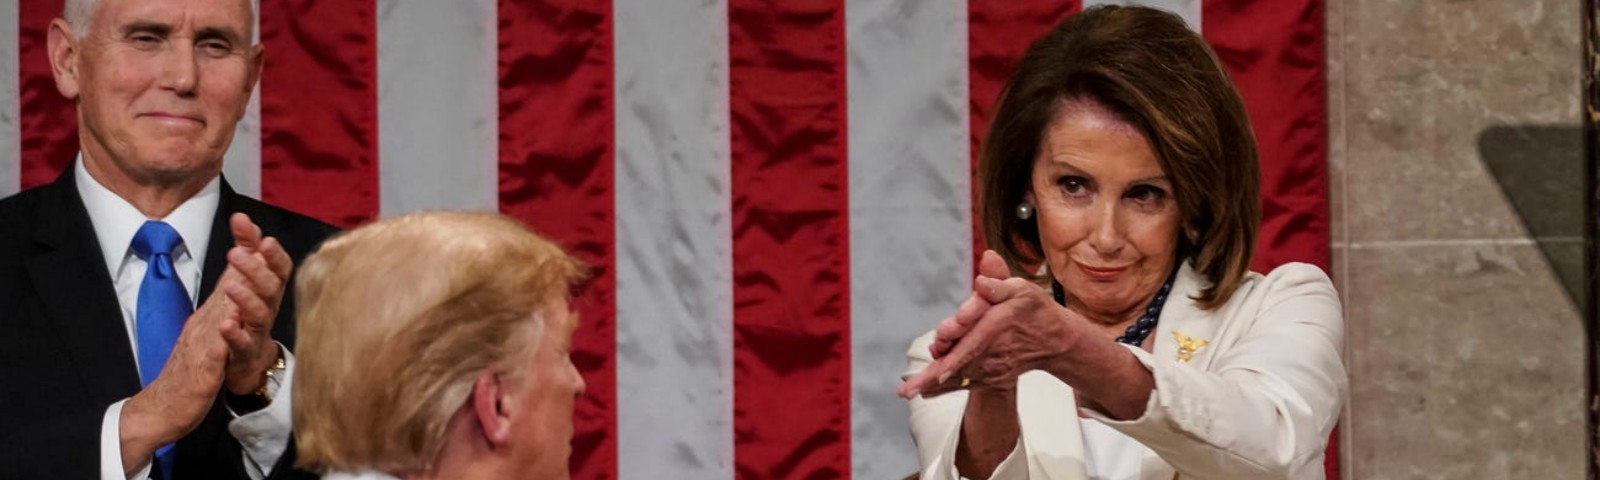 Donald Trump turns to House speaker Nancy Pelosi as he delivers his State of the Union address.